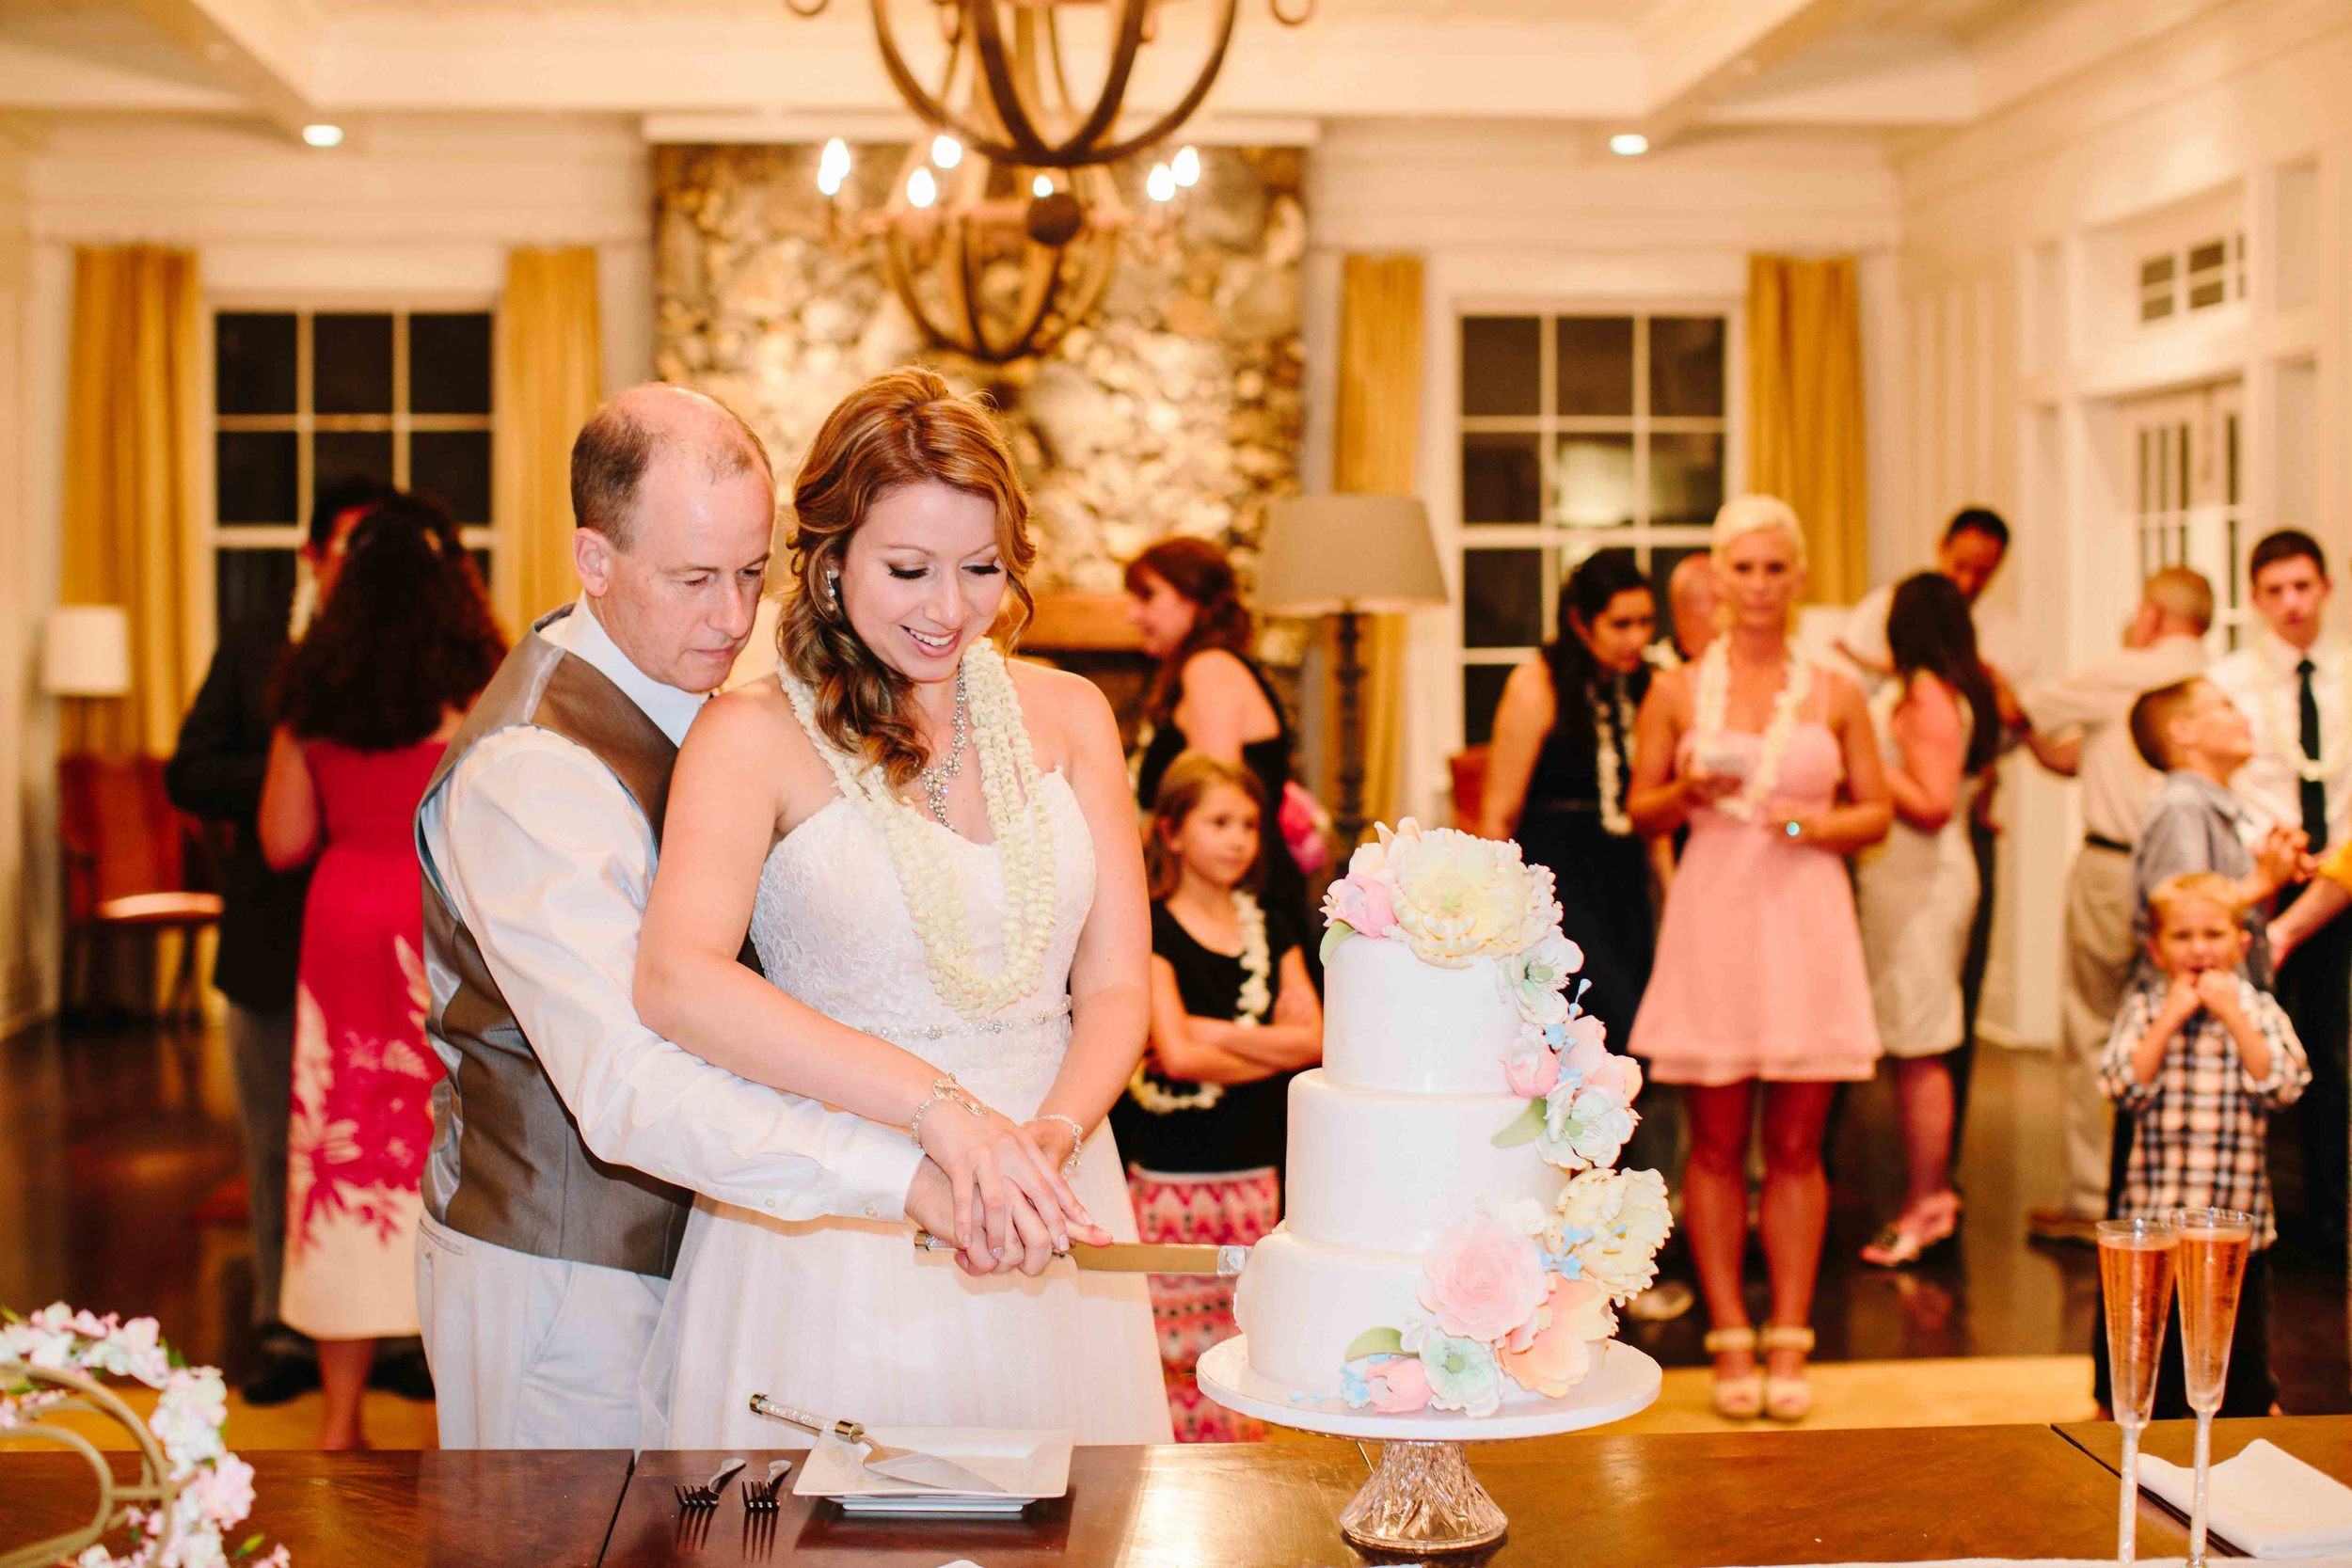 Cake Cutting at Dillingham Ranch